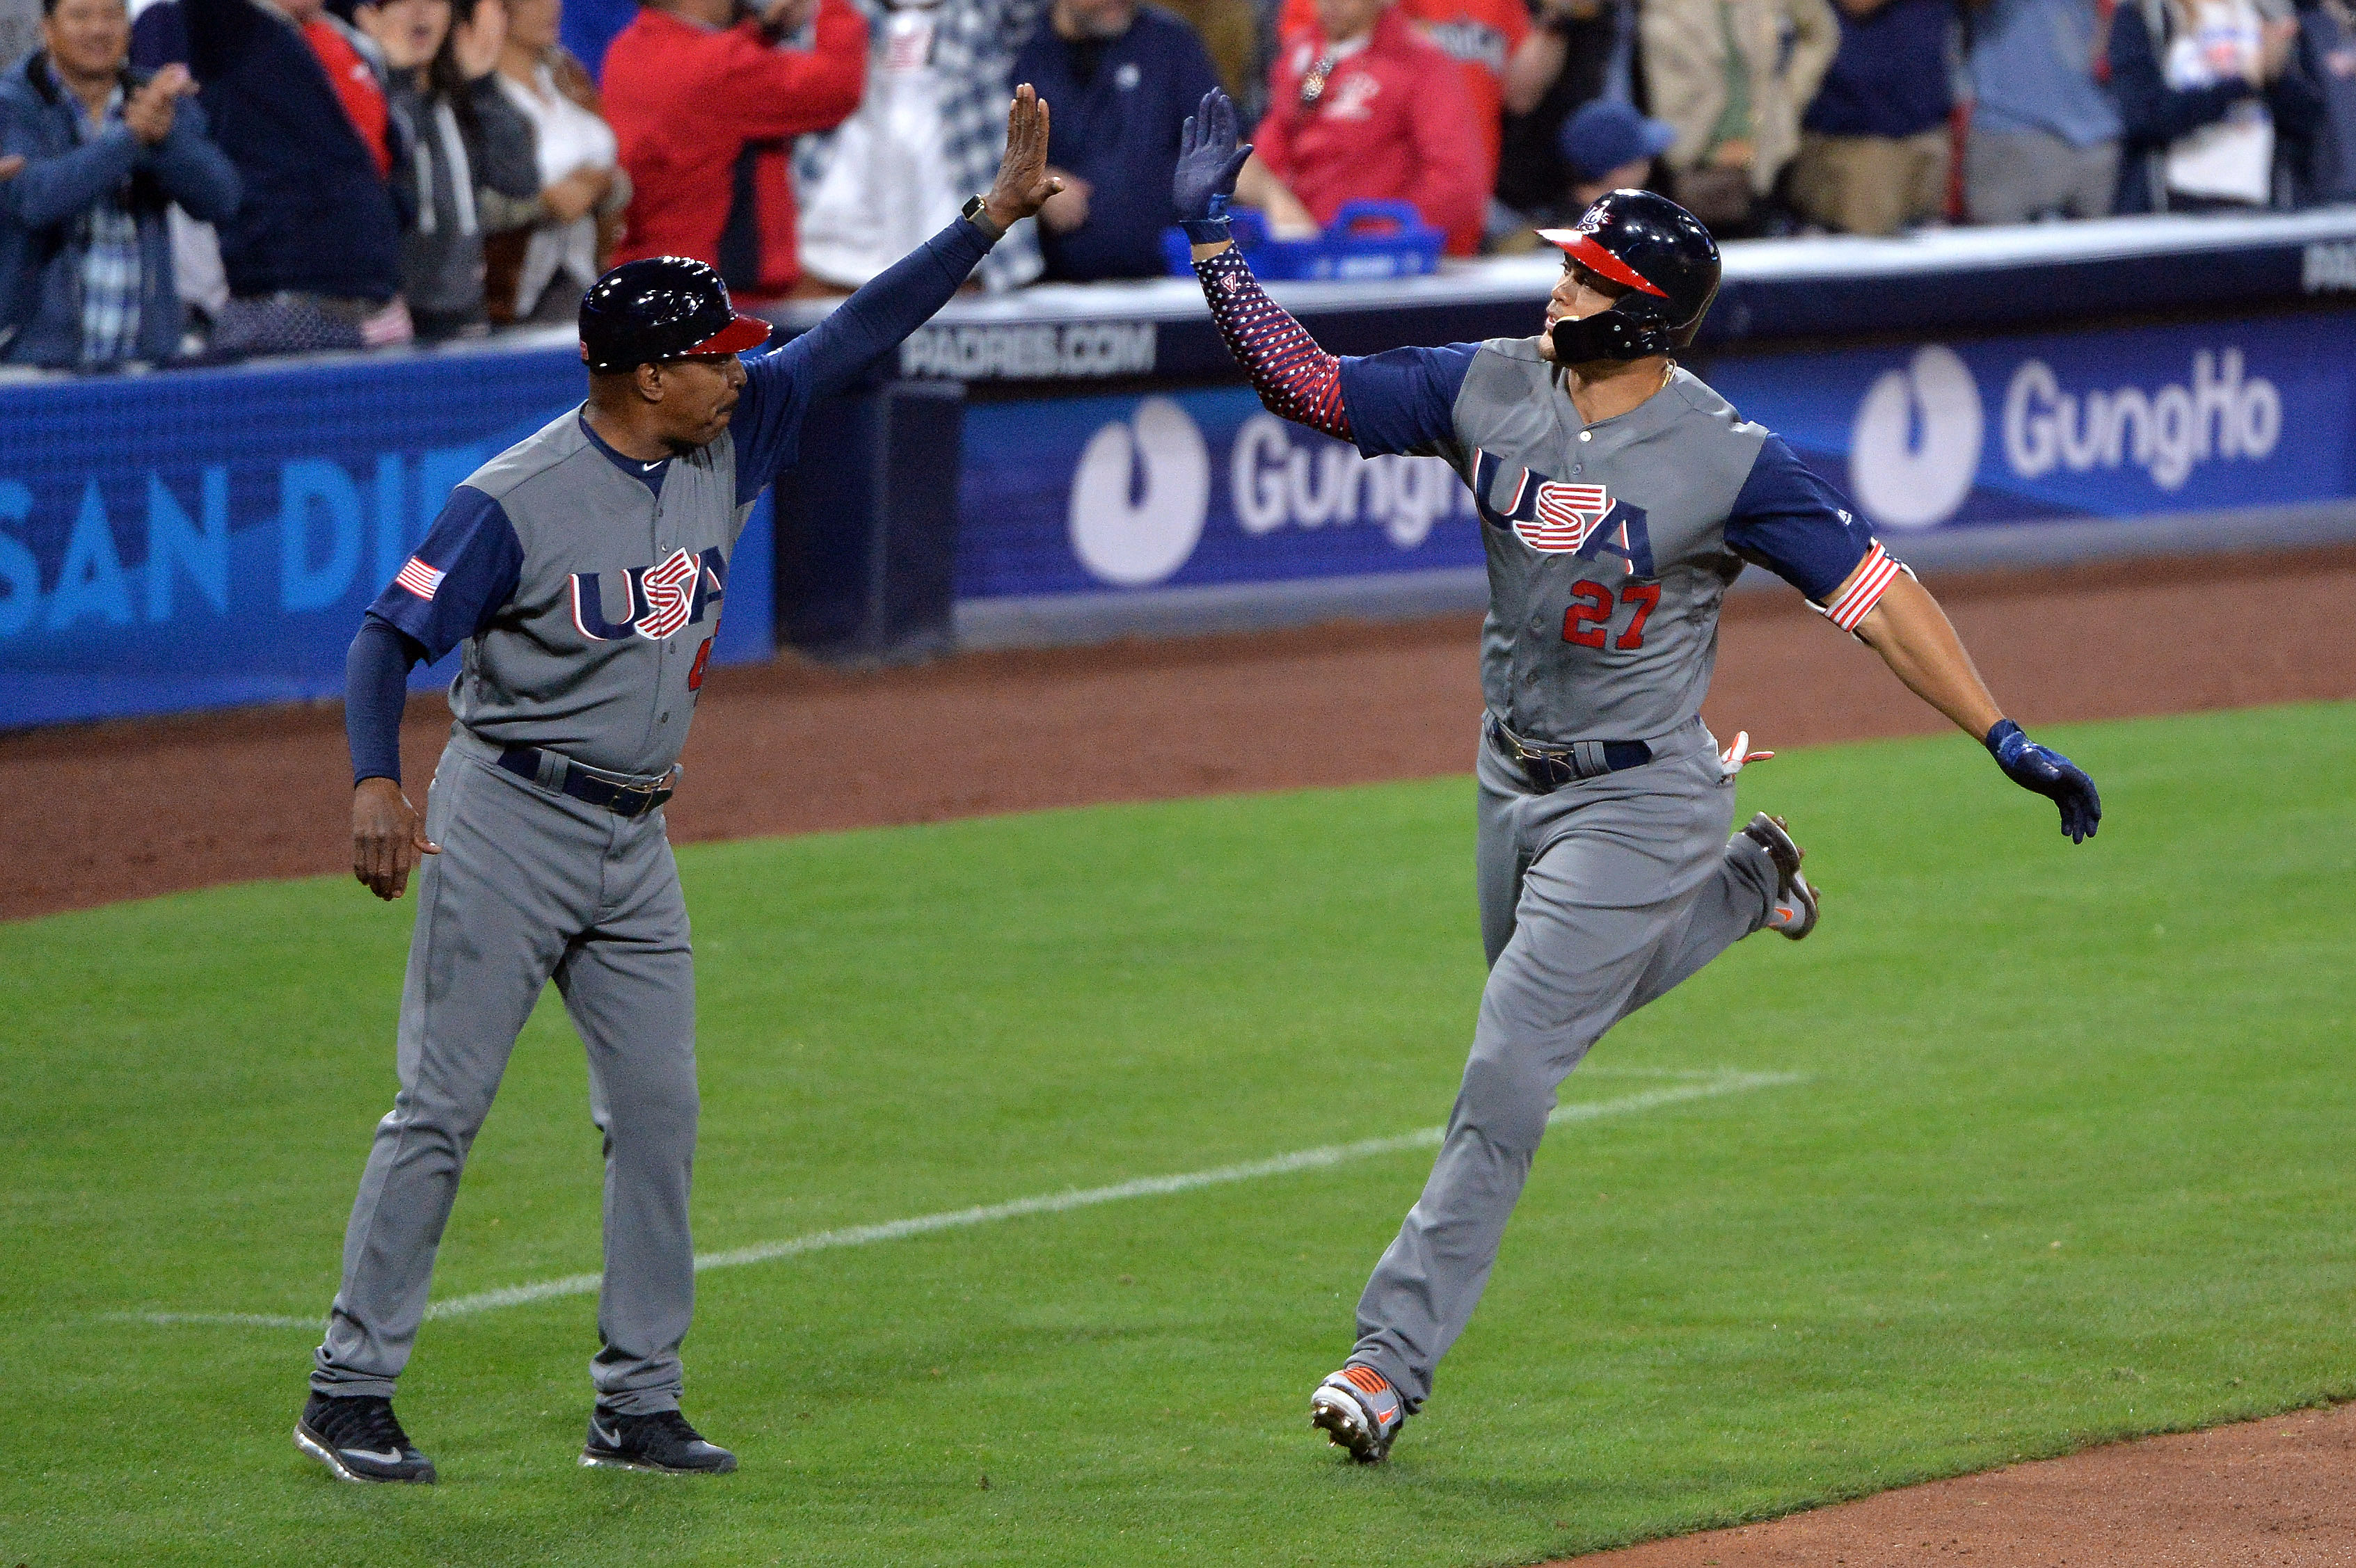 World Baseball Classic: USA Advances to Semifinals; Dominican Republic Eliminated